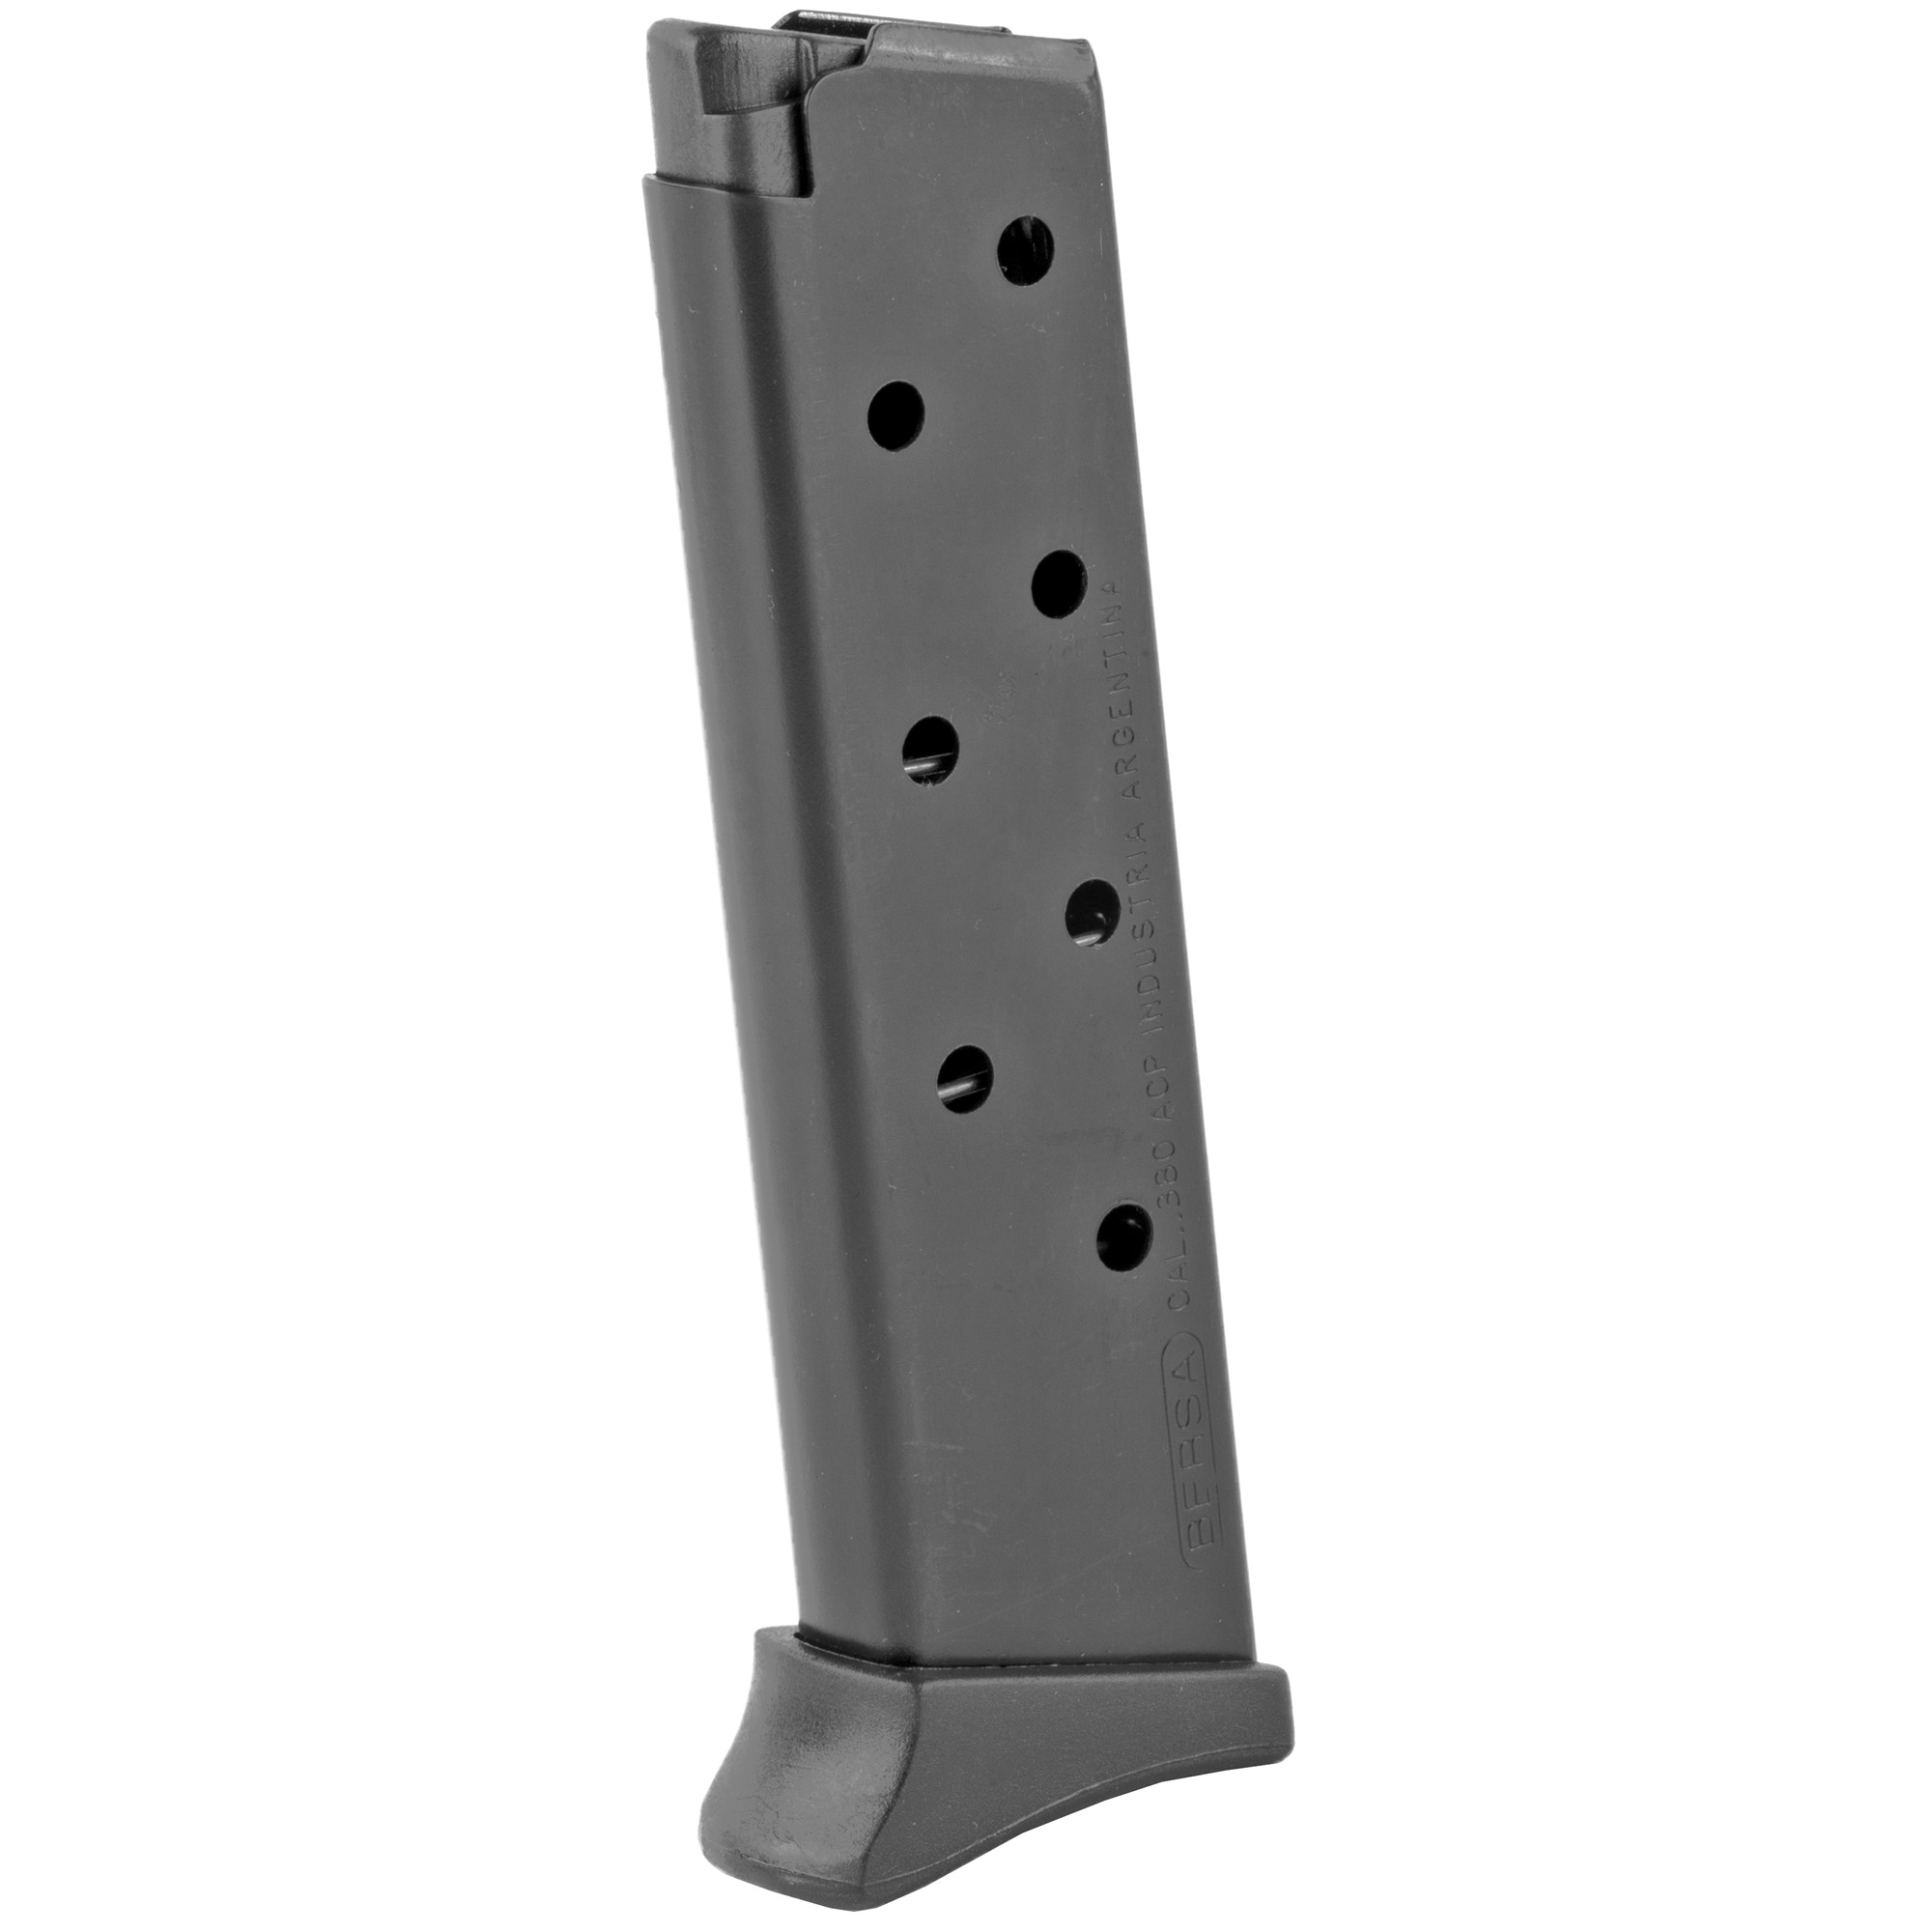 This factory Bersa magazine is manufactured to strict specifications to ensure perfect fit and reliable function in your Bersa pistol.